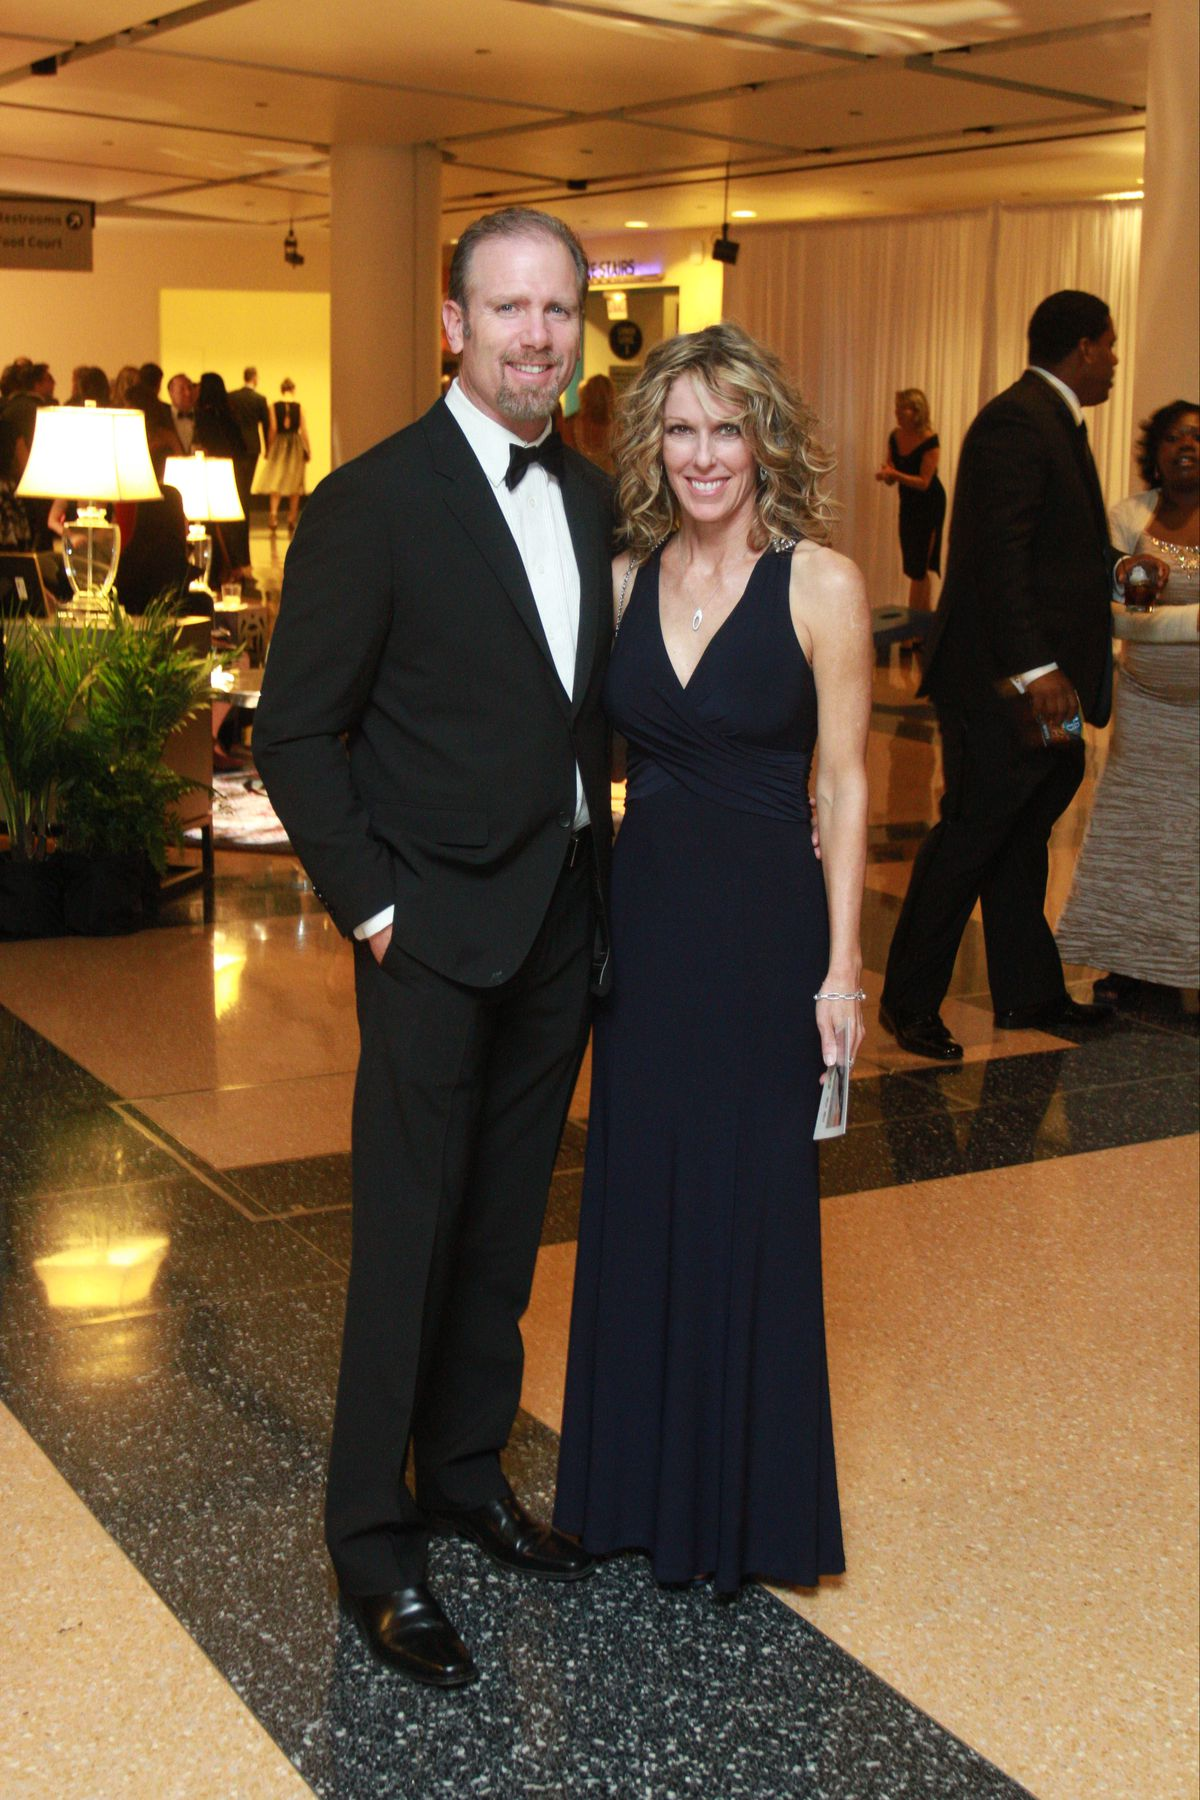 Gary and Cheryl Rabine at the Museum of Science and Industry's 33rd Annual Columbian Ball in 2014.